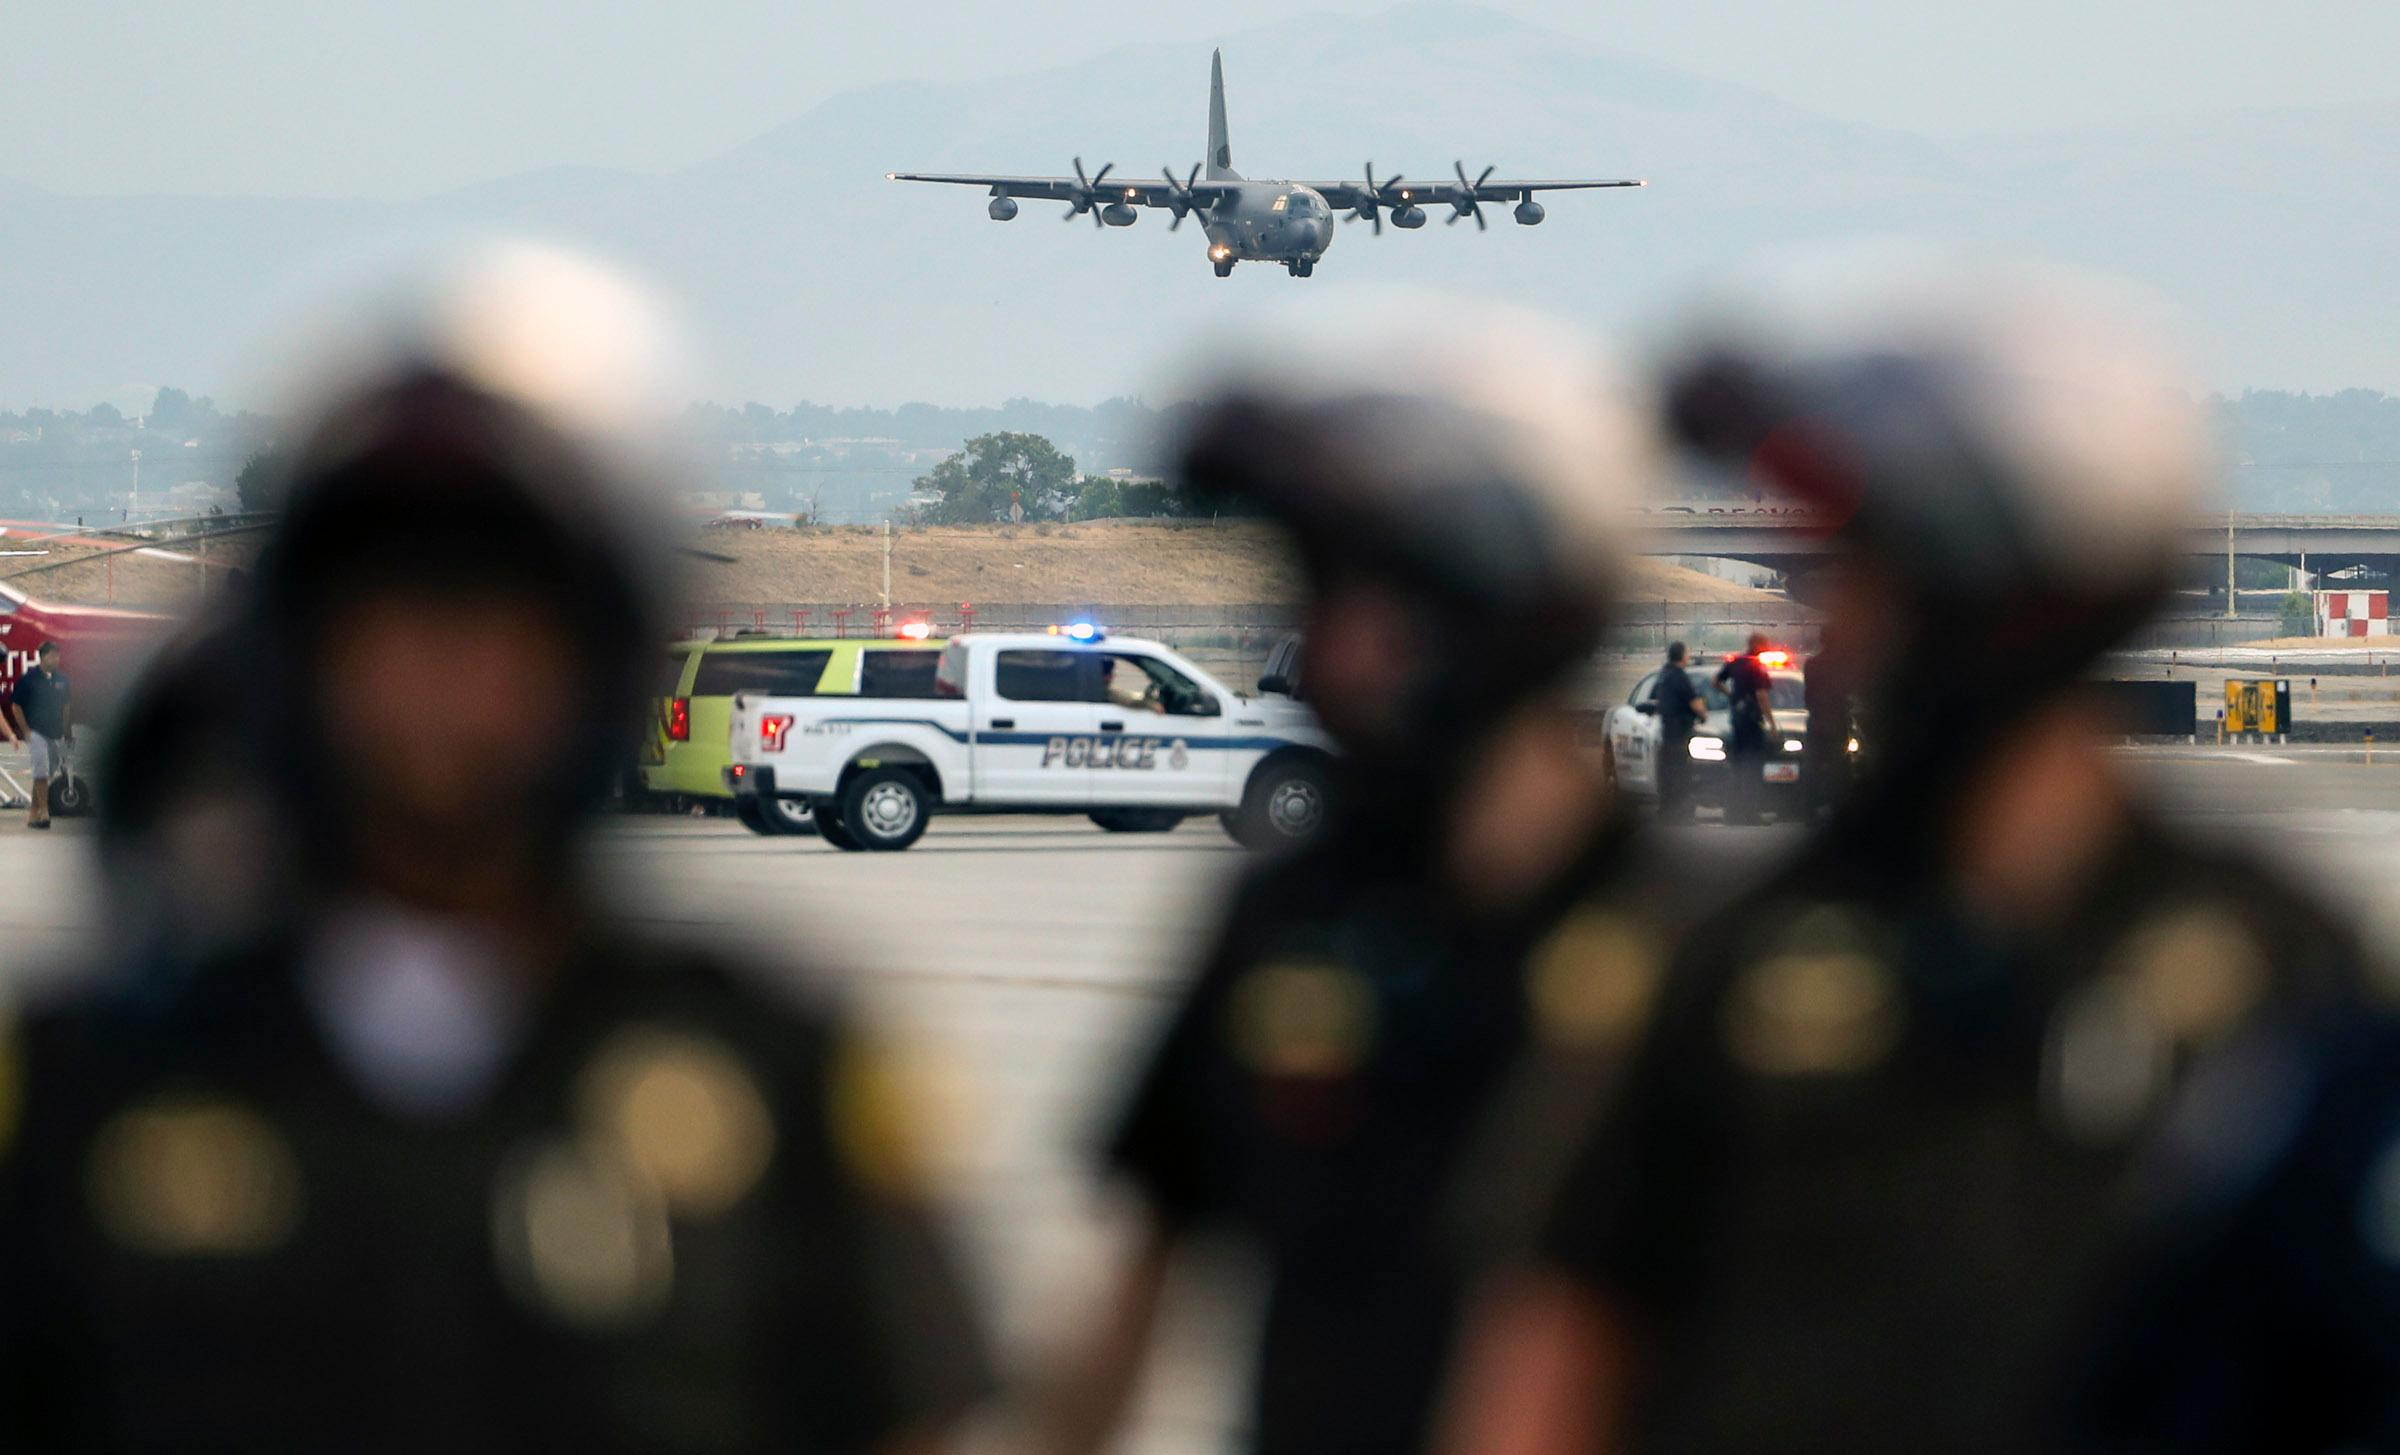 A  C130-J carrying the  casket of Draper Battalion Chief Matt Burchett prepares to landa at the Utah Air National Guard Base in Salt Lake City on Wednesday, Aug. 15, 2018. Burchett was killed while fighting the Mendocino Complex Fire north of San Francisco.